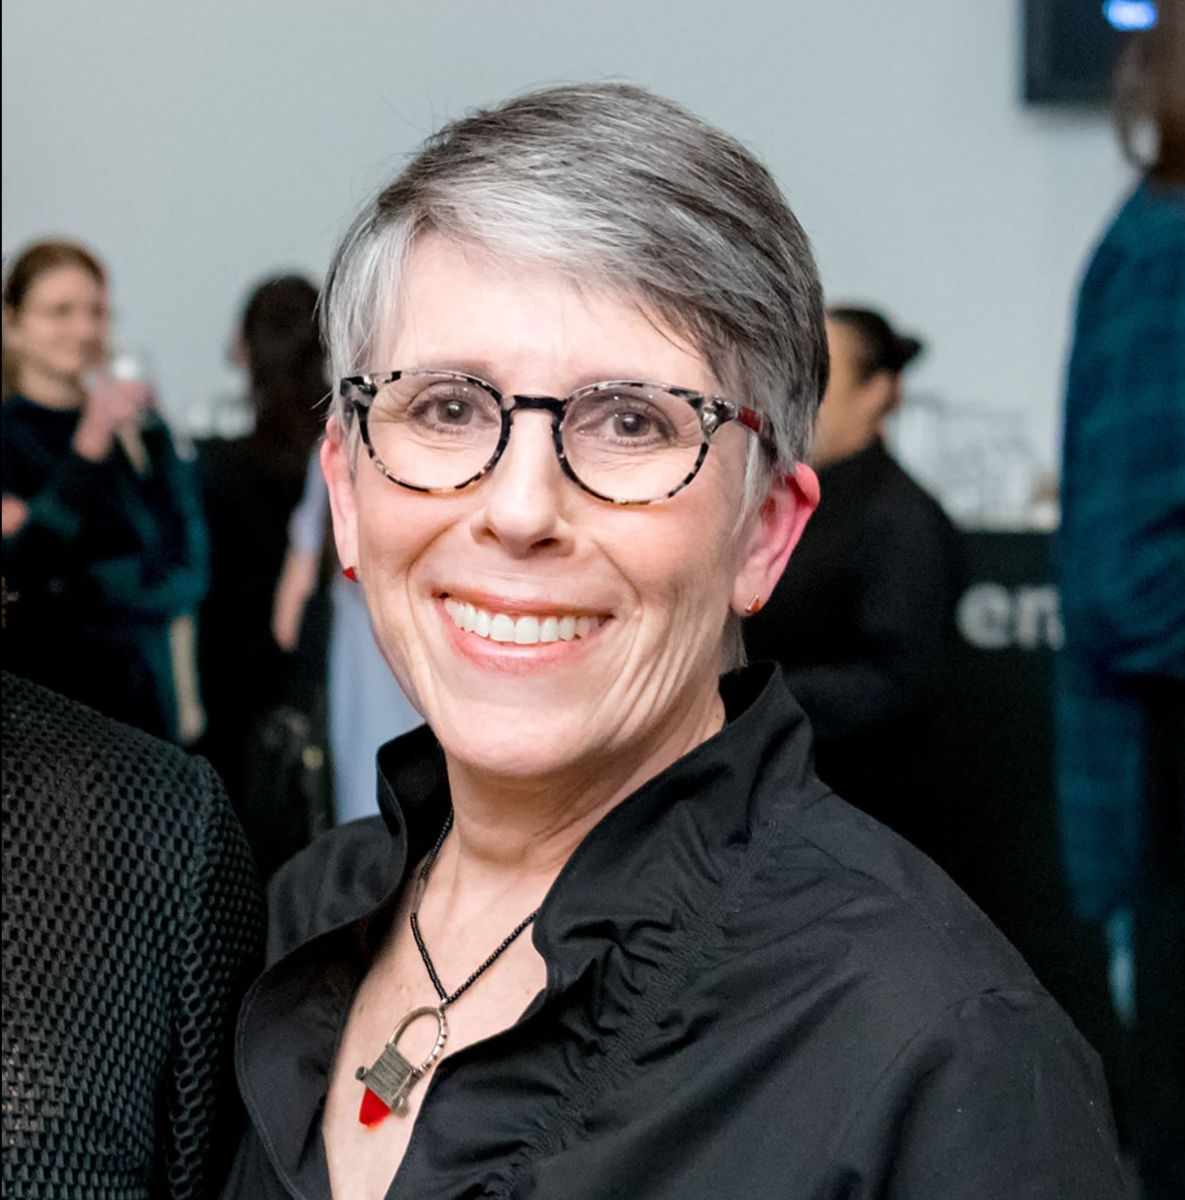 Bonnie Rubenstein at the CONTACT launch party, Ryerson Image Centre (RIC), 2019. Courtesy of the RIC, photo: © Clifton Li., 99f88b7d-903e-959c-425f-ec2caf07460c